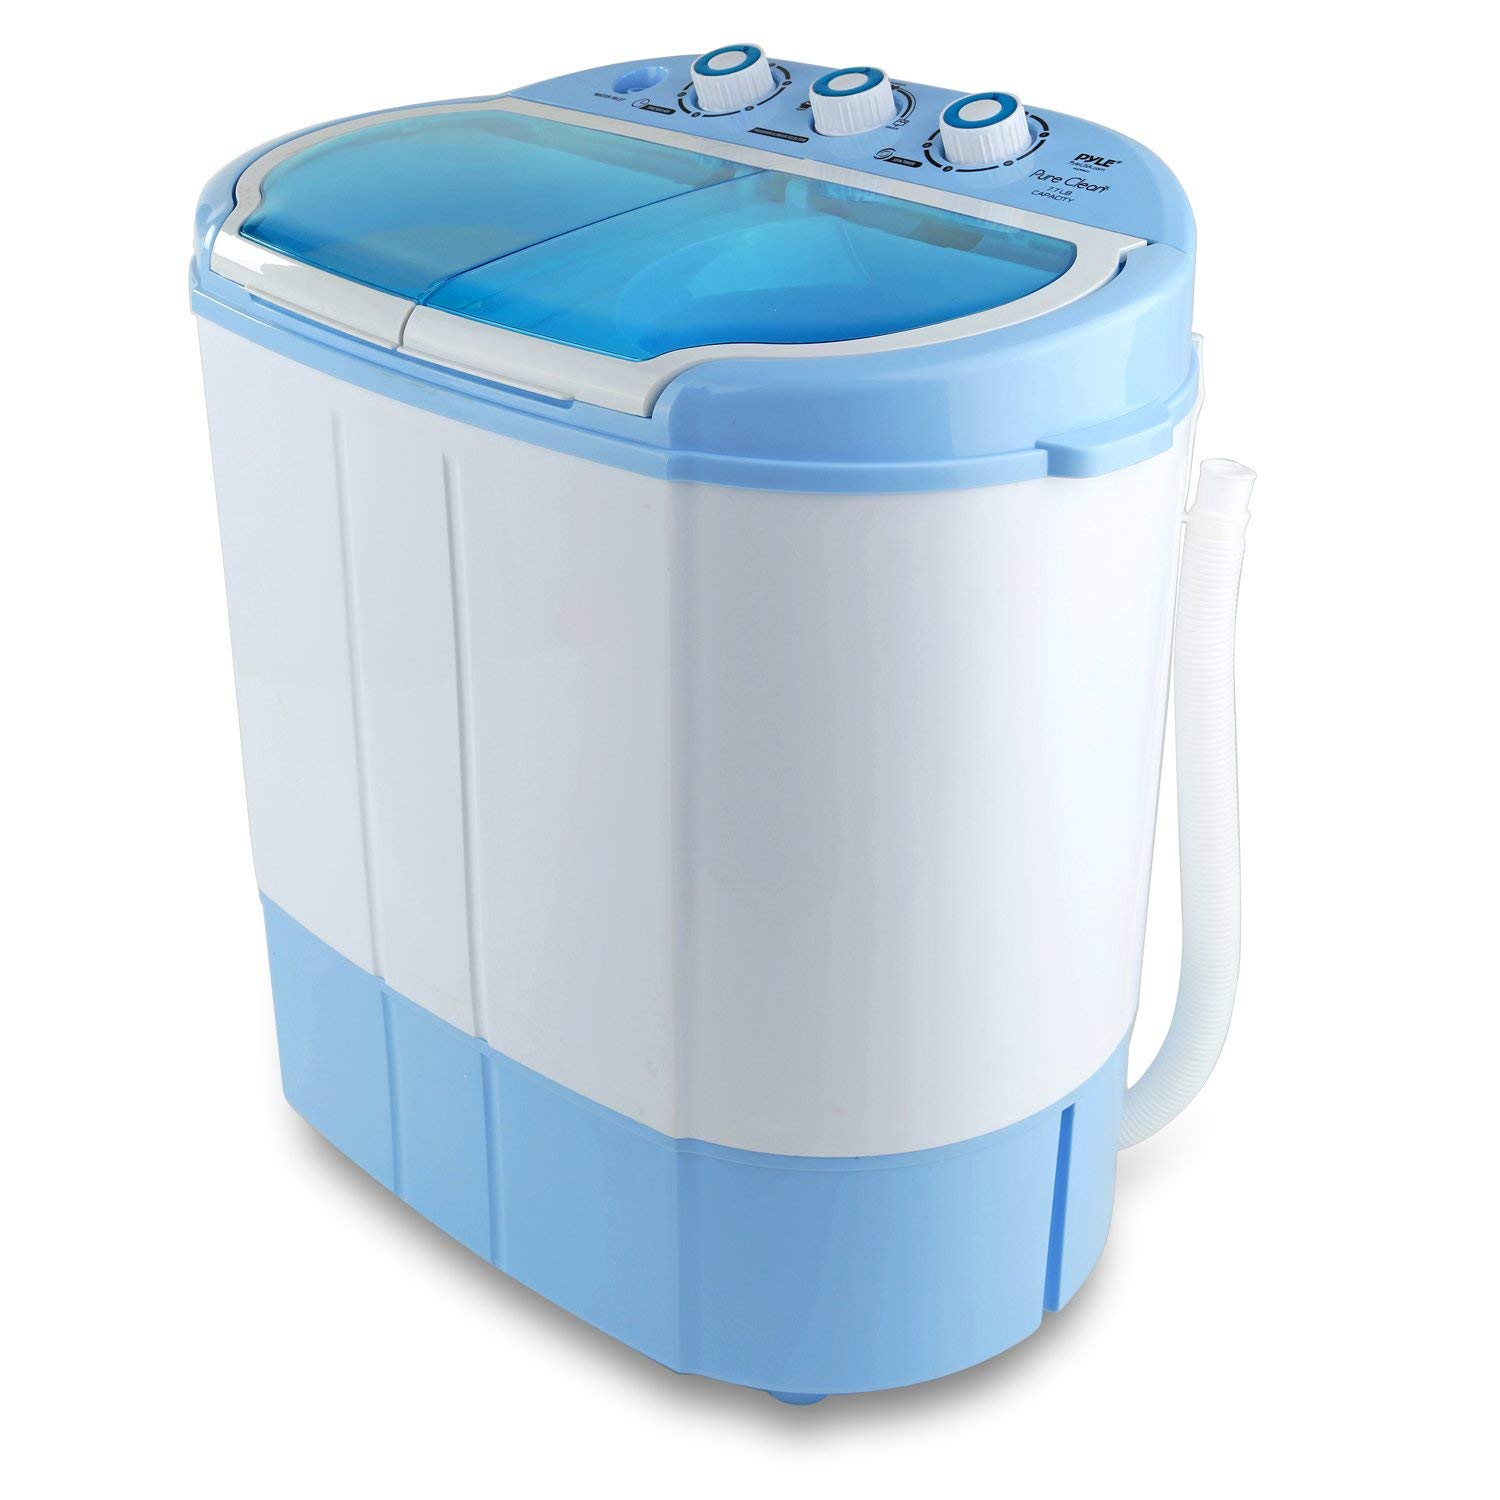 Pyle Electric Portable Washing Machine